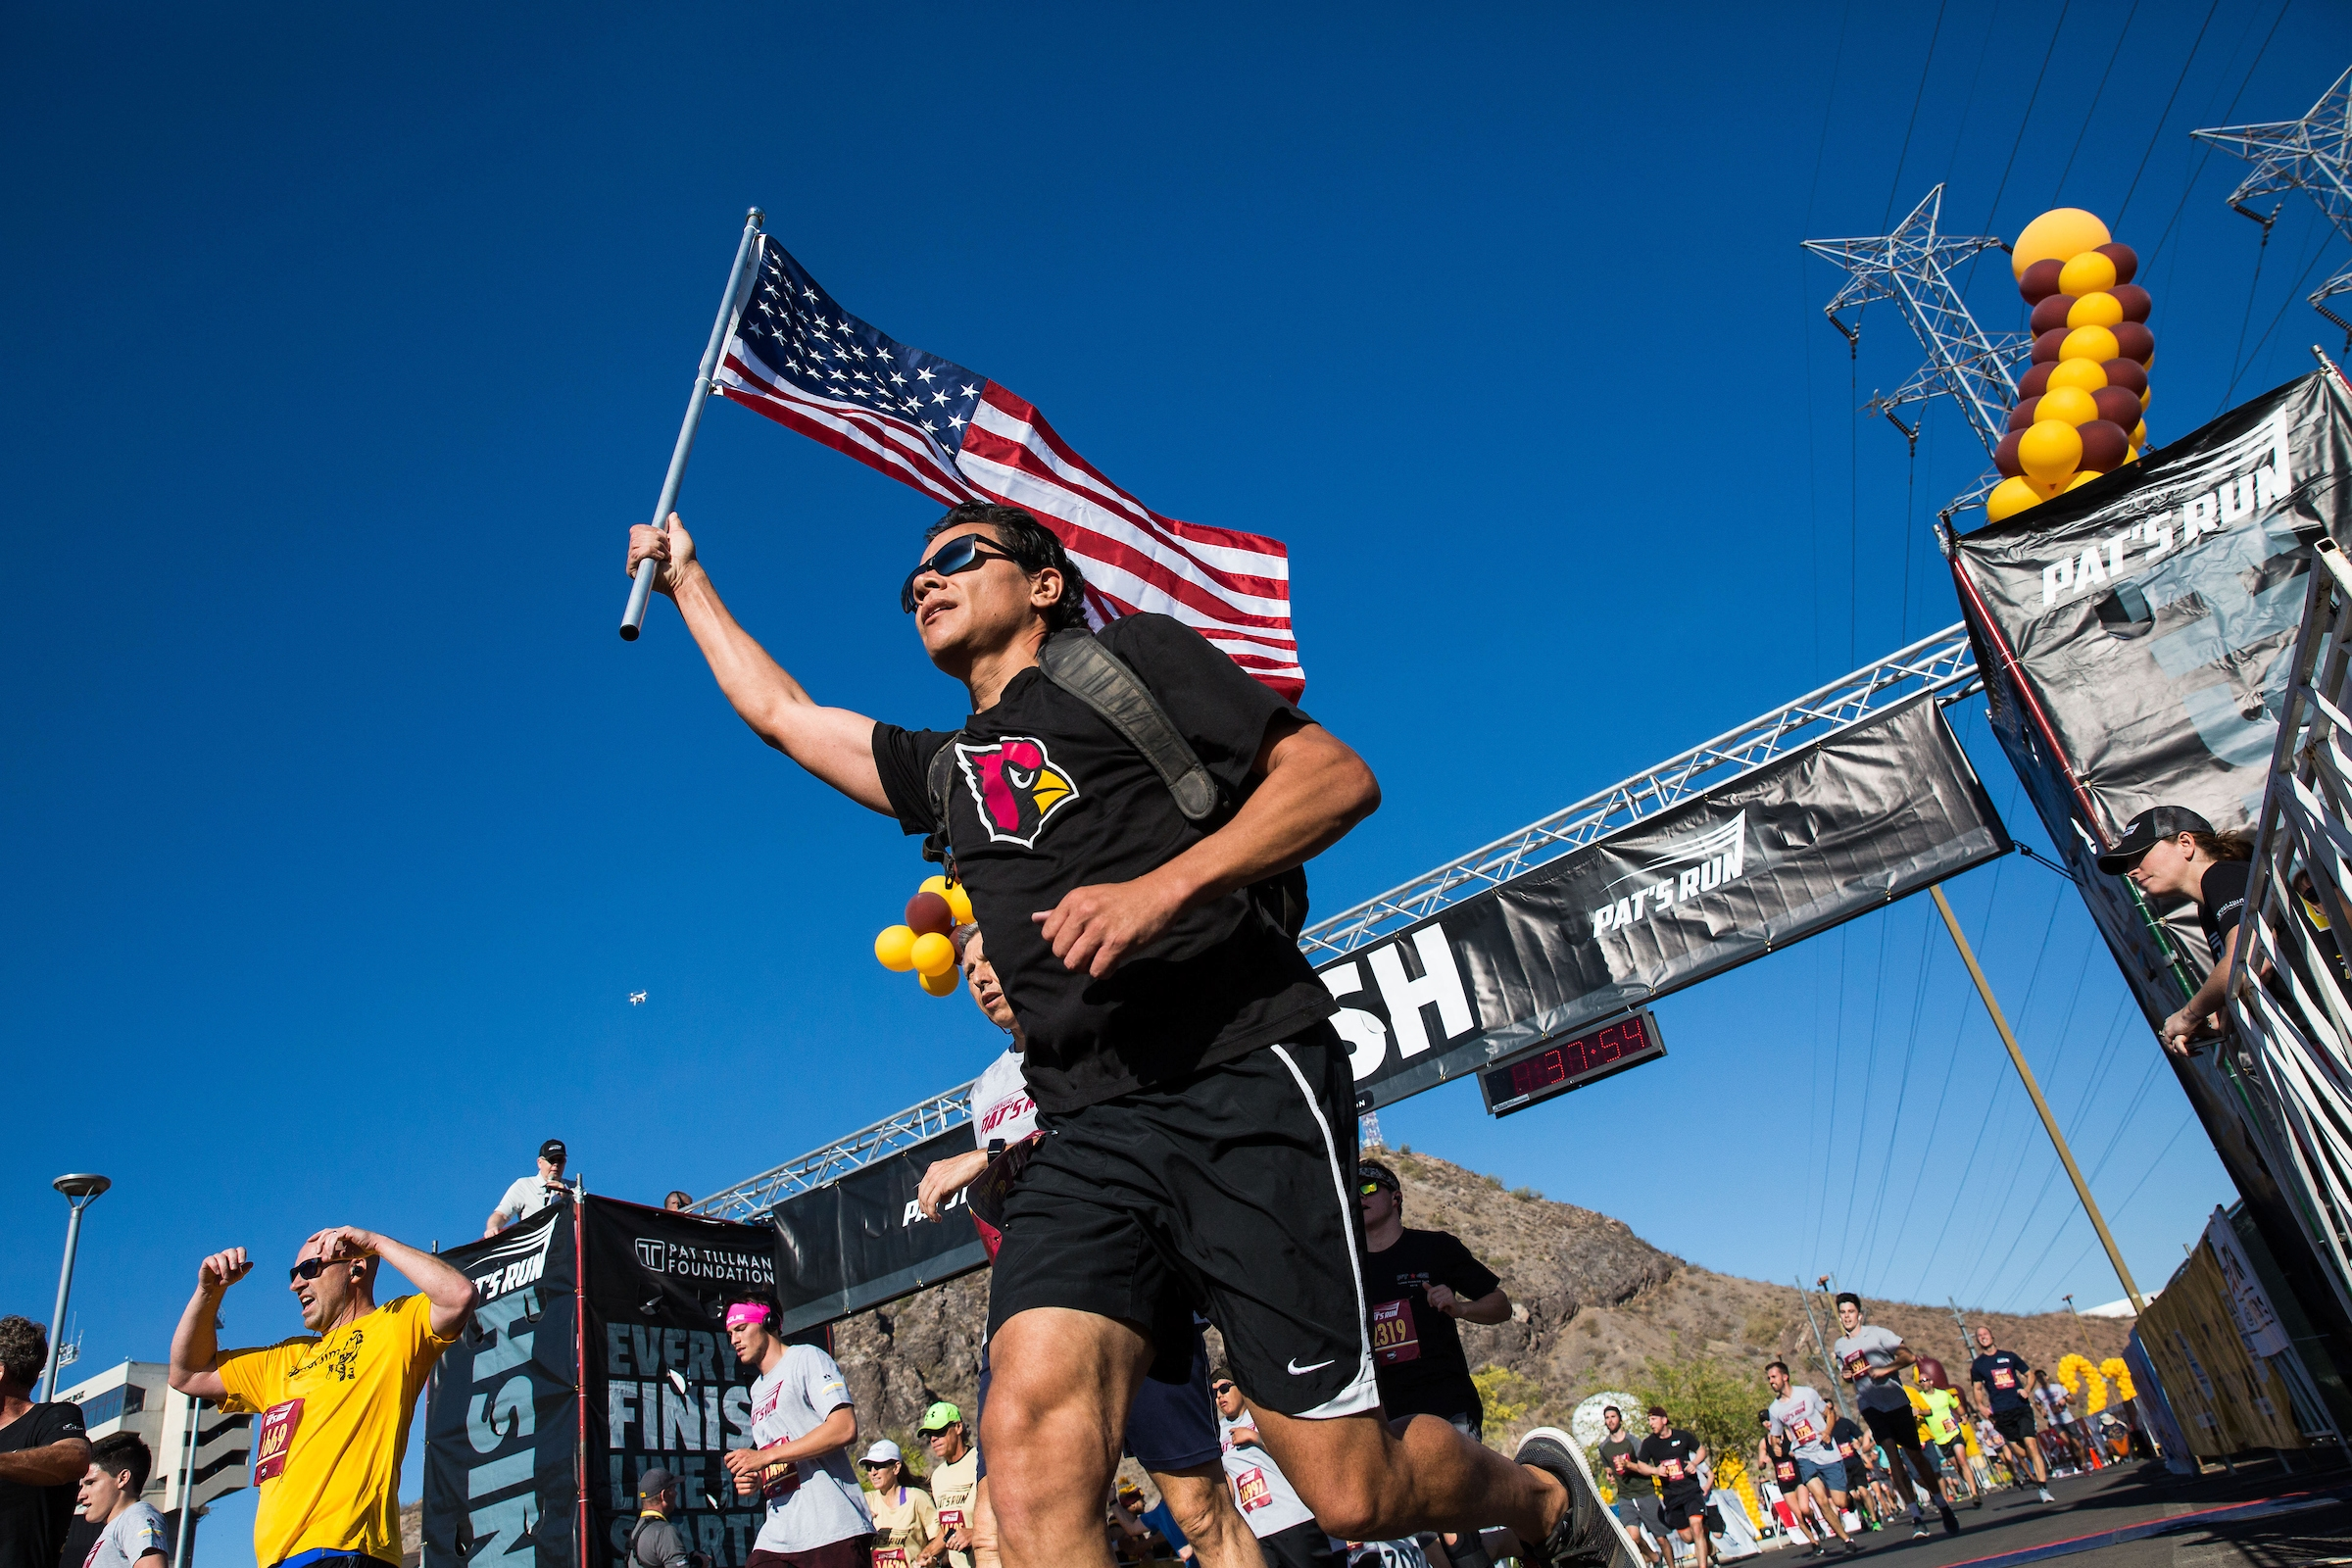 man carrying flag passing finish line in race